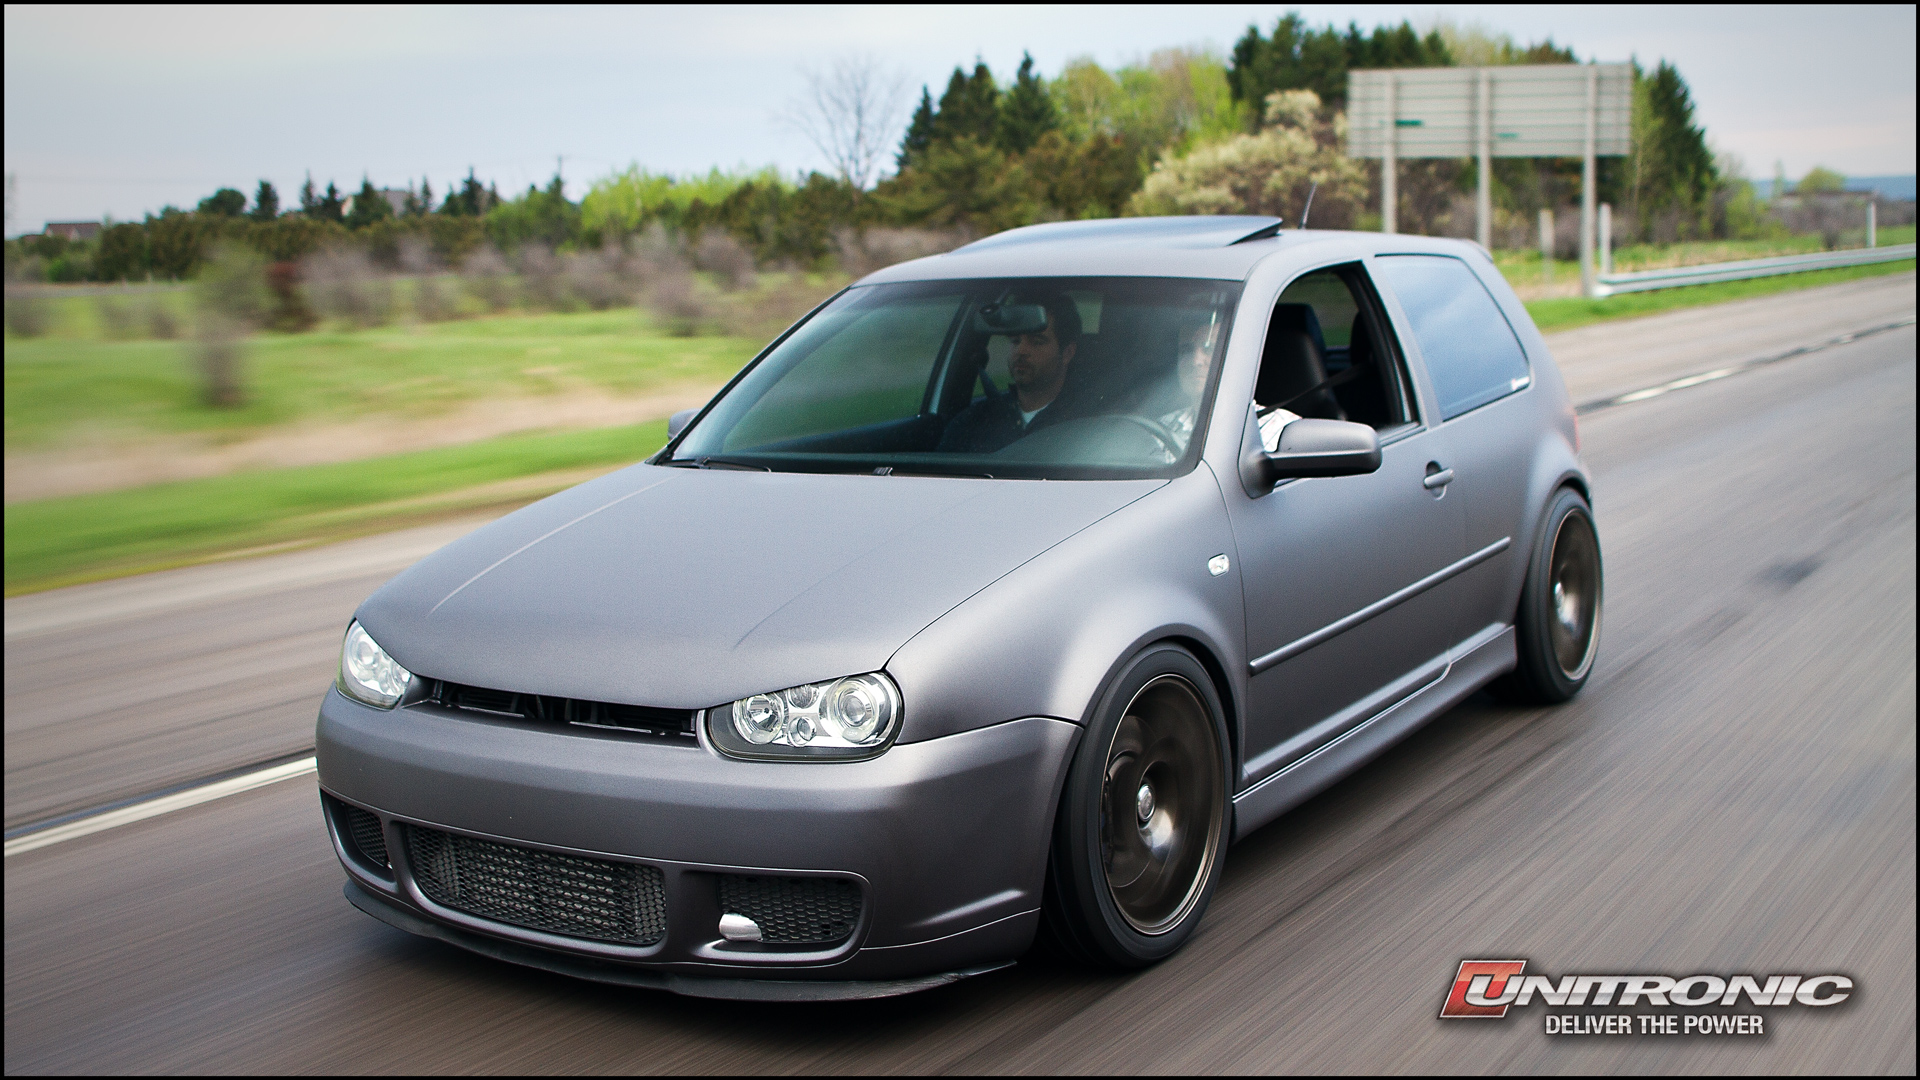 Vw golf mk4 tuning parts remaps and servicing awesome gti autos post